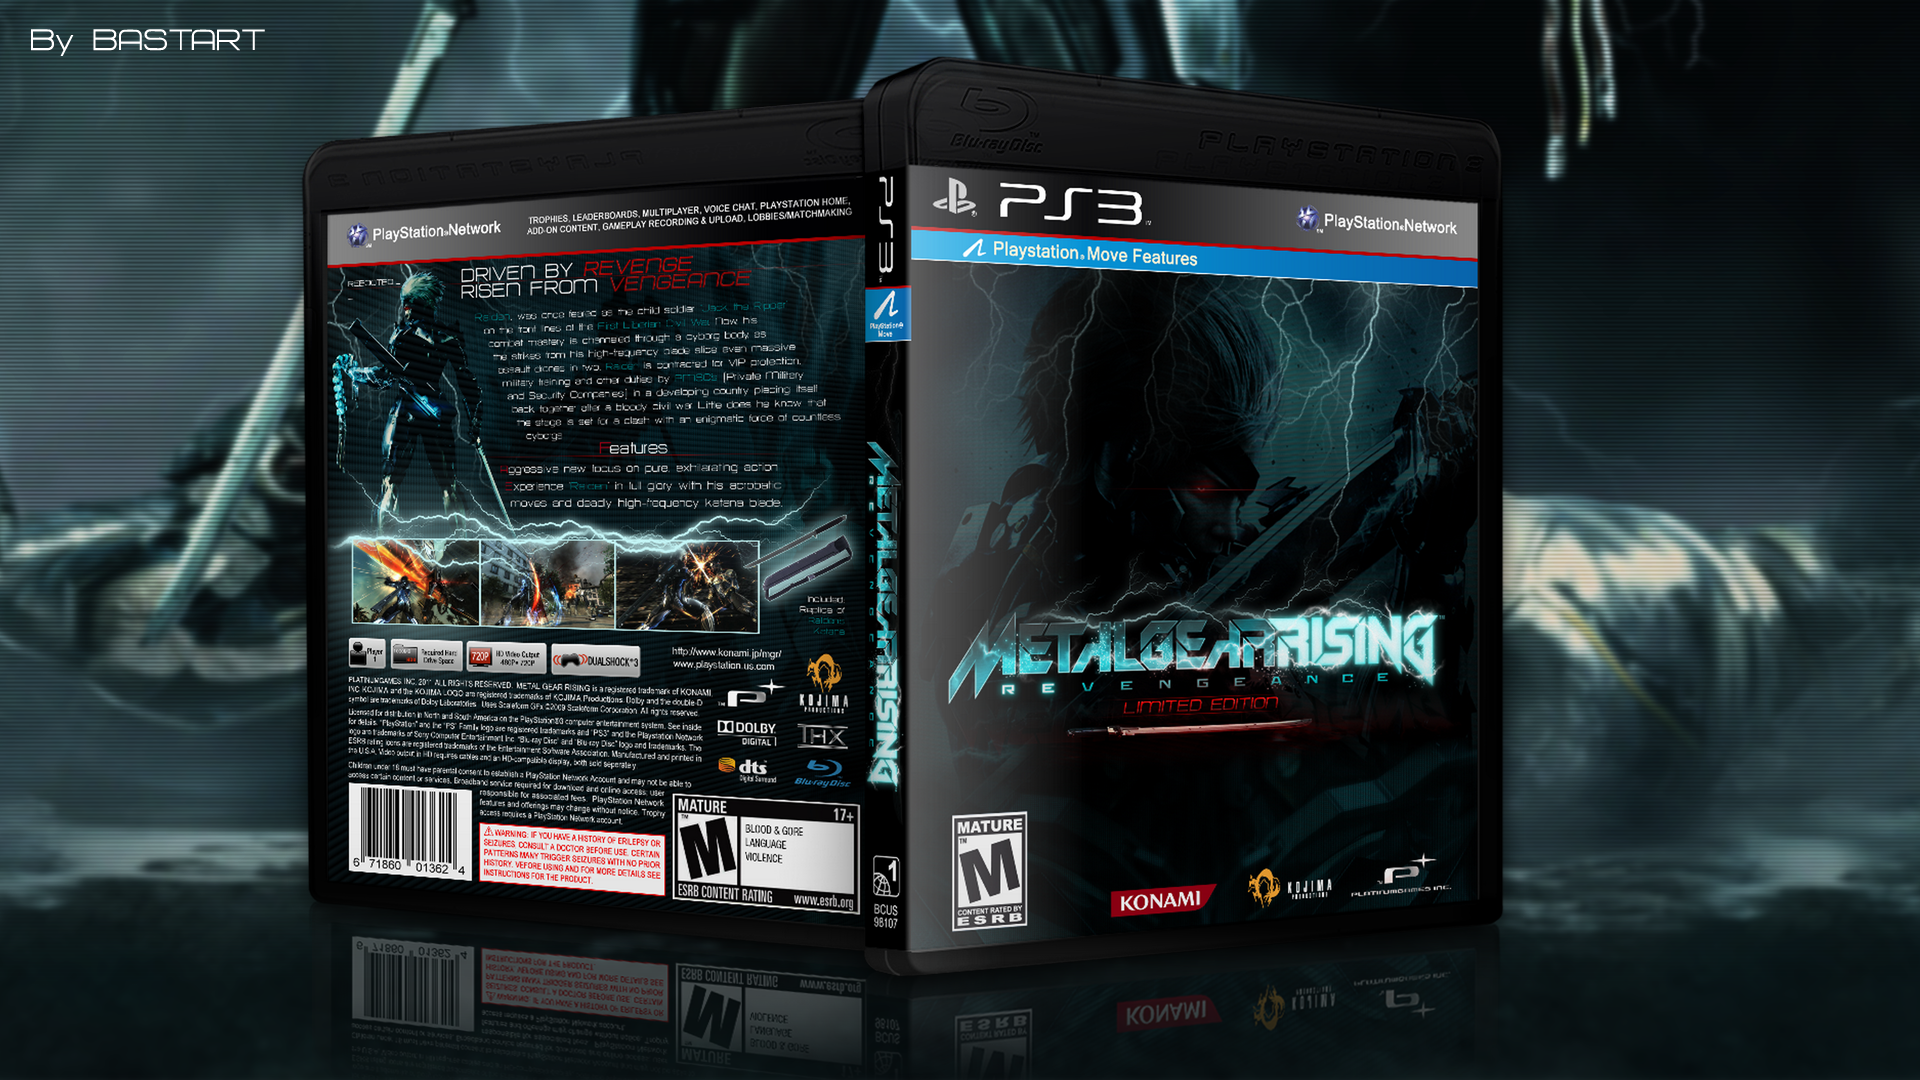 PlayStation 3   187  Metal Gear Rising  Revengeance  Limited Edition  Box    Metal Gear Rising Revengeance Cover Ps3